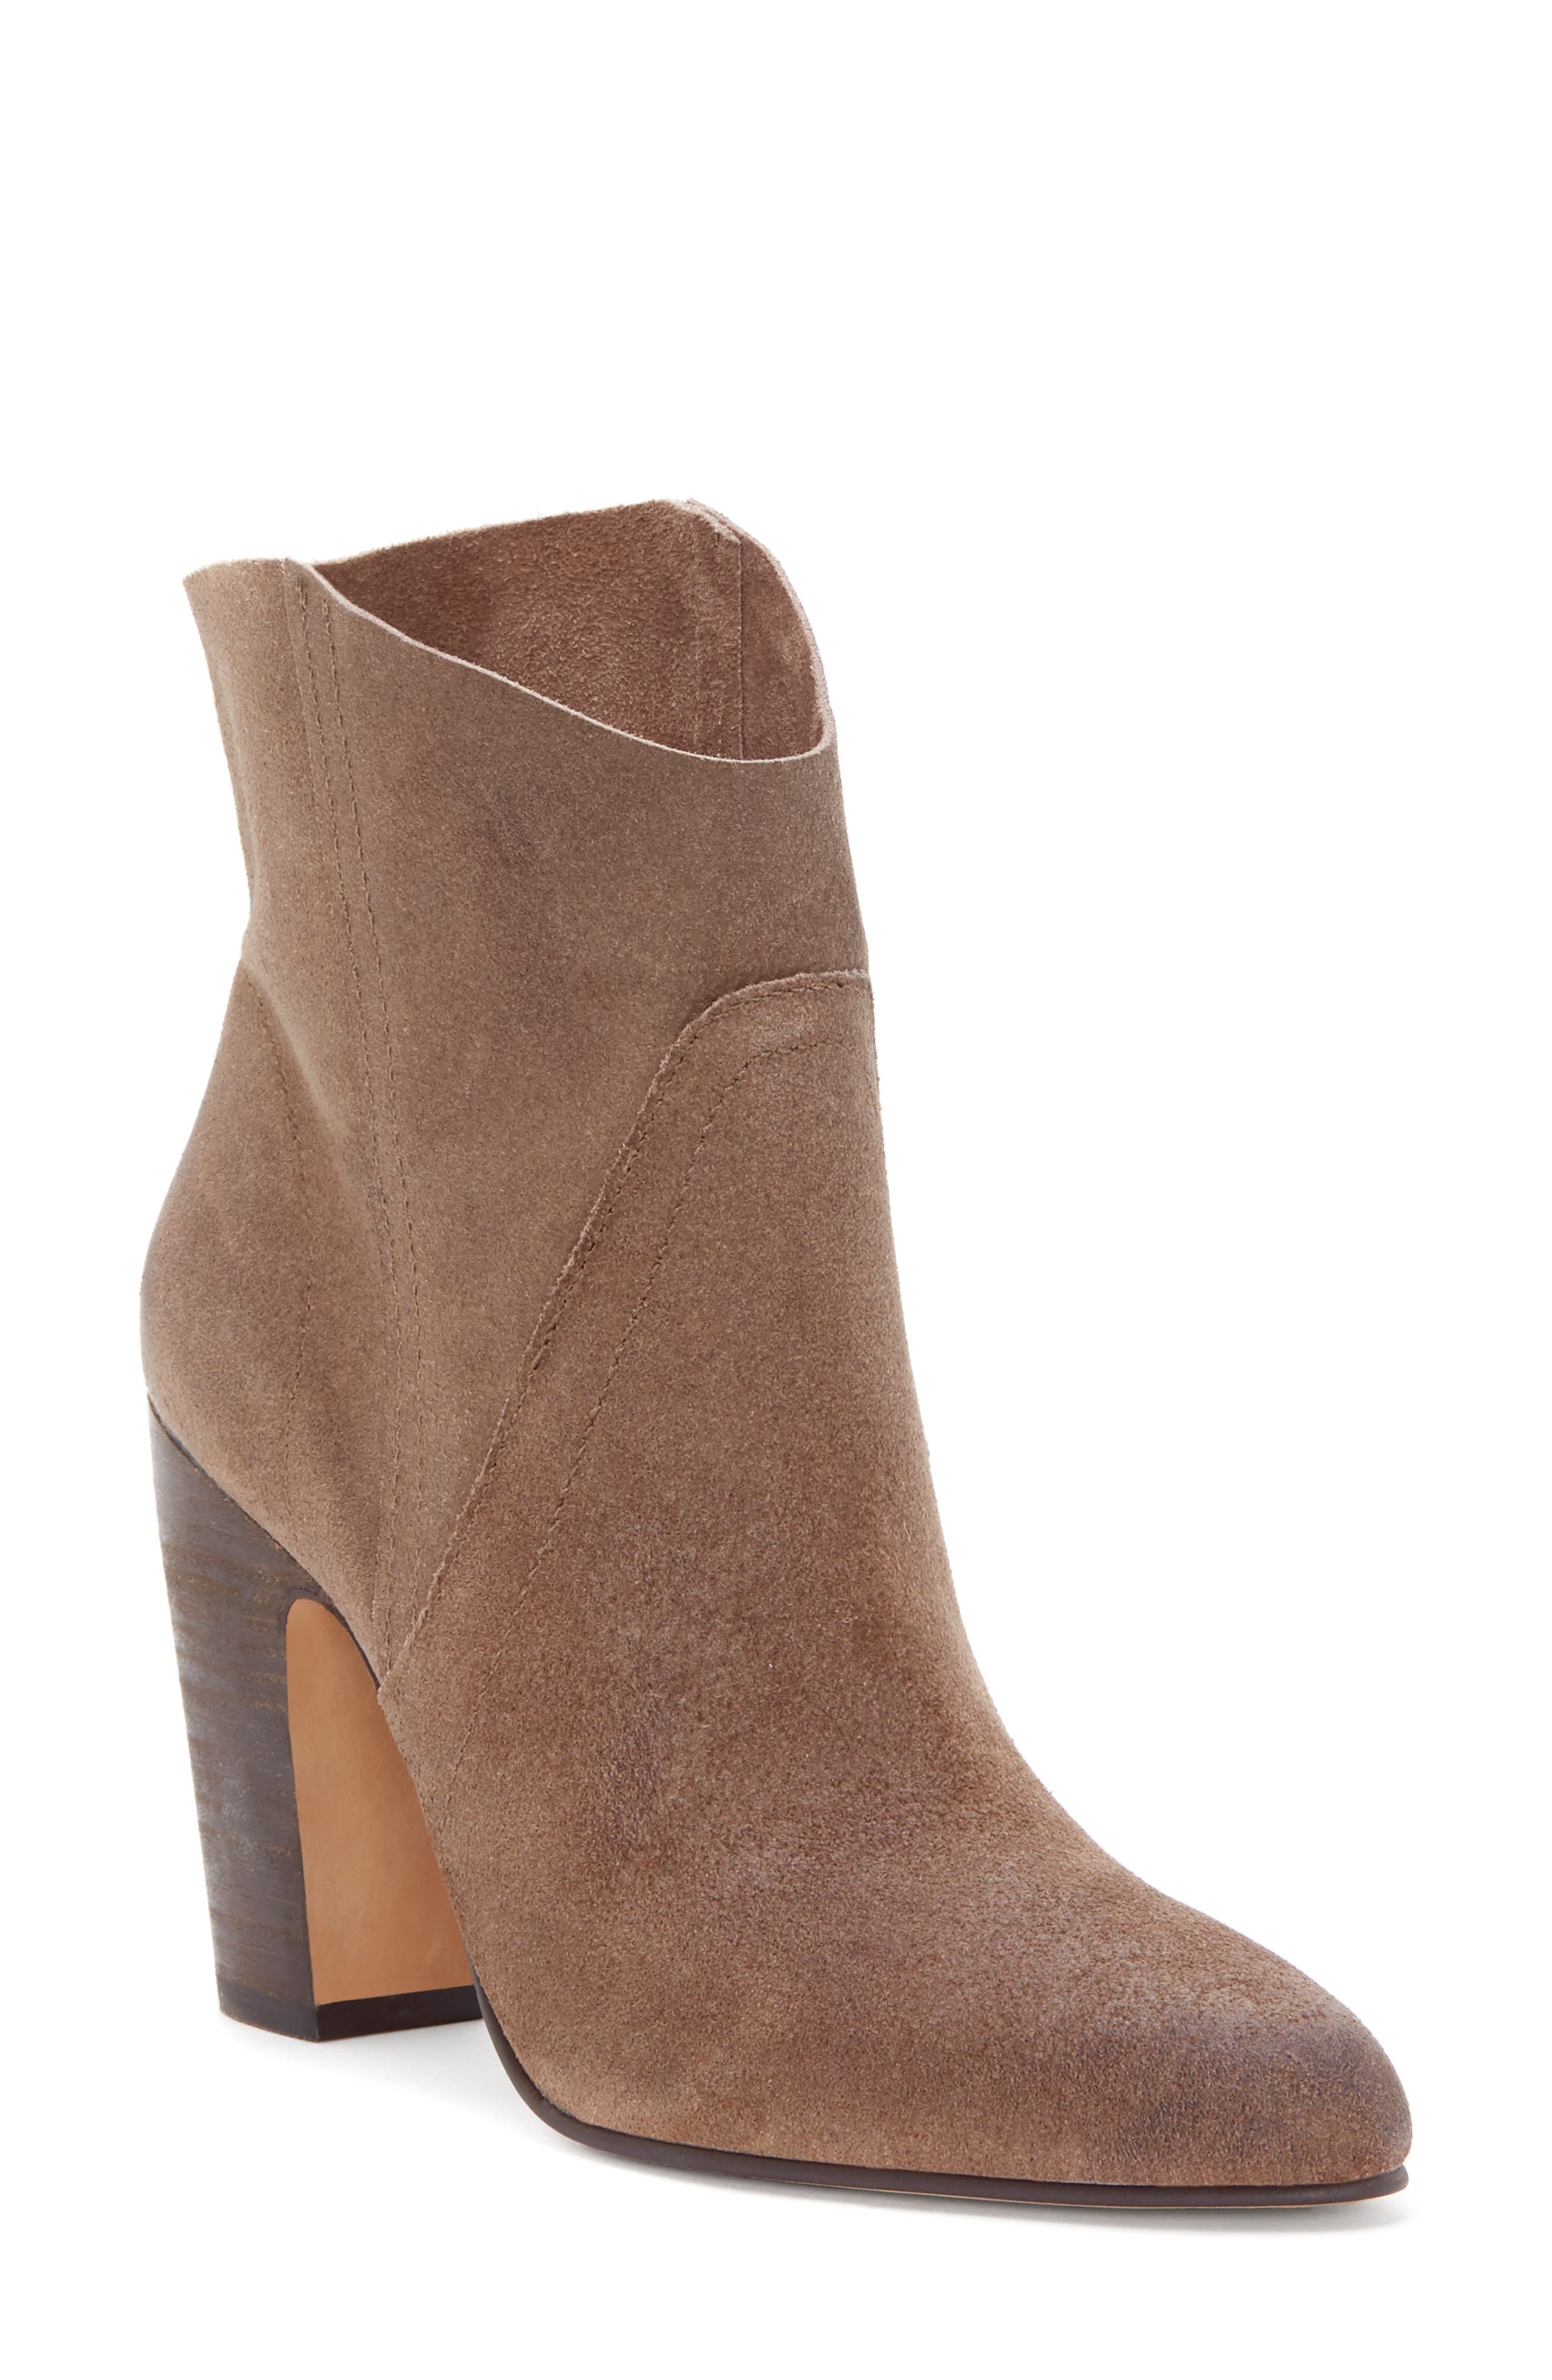 VINCE CAMUTO Creestal Western Bootie, Main, color, BEDROCK LEATHER